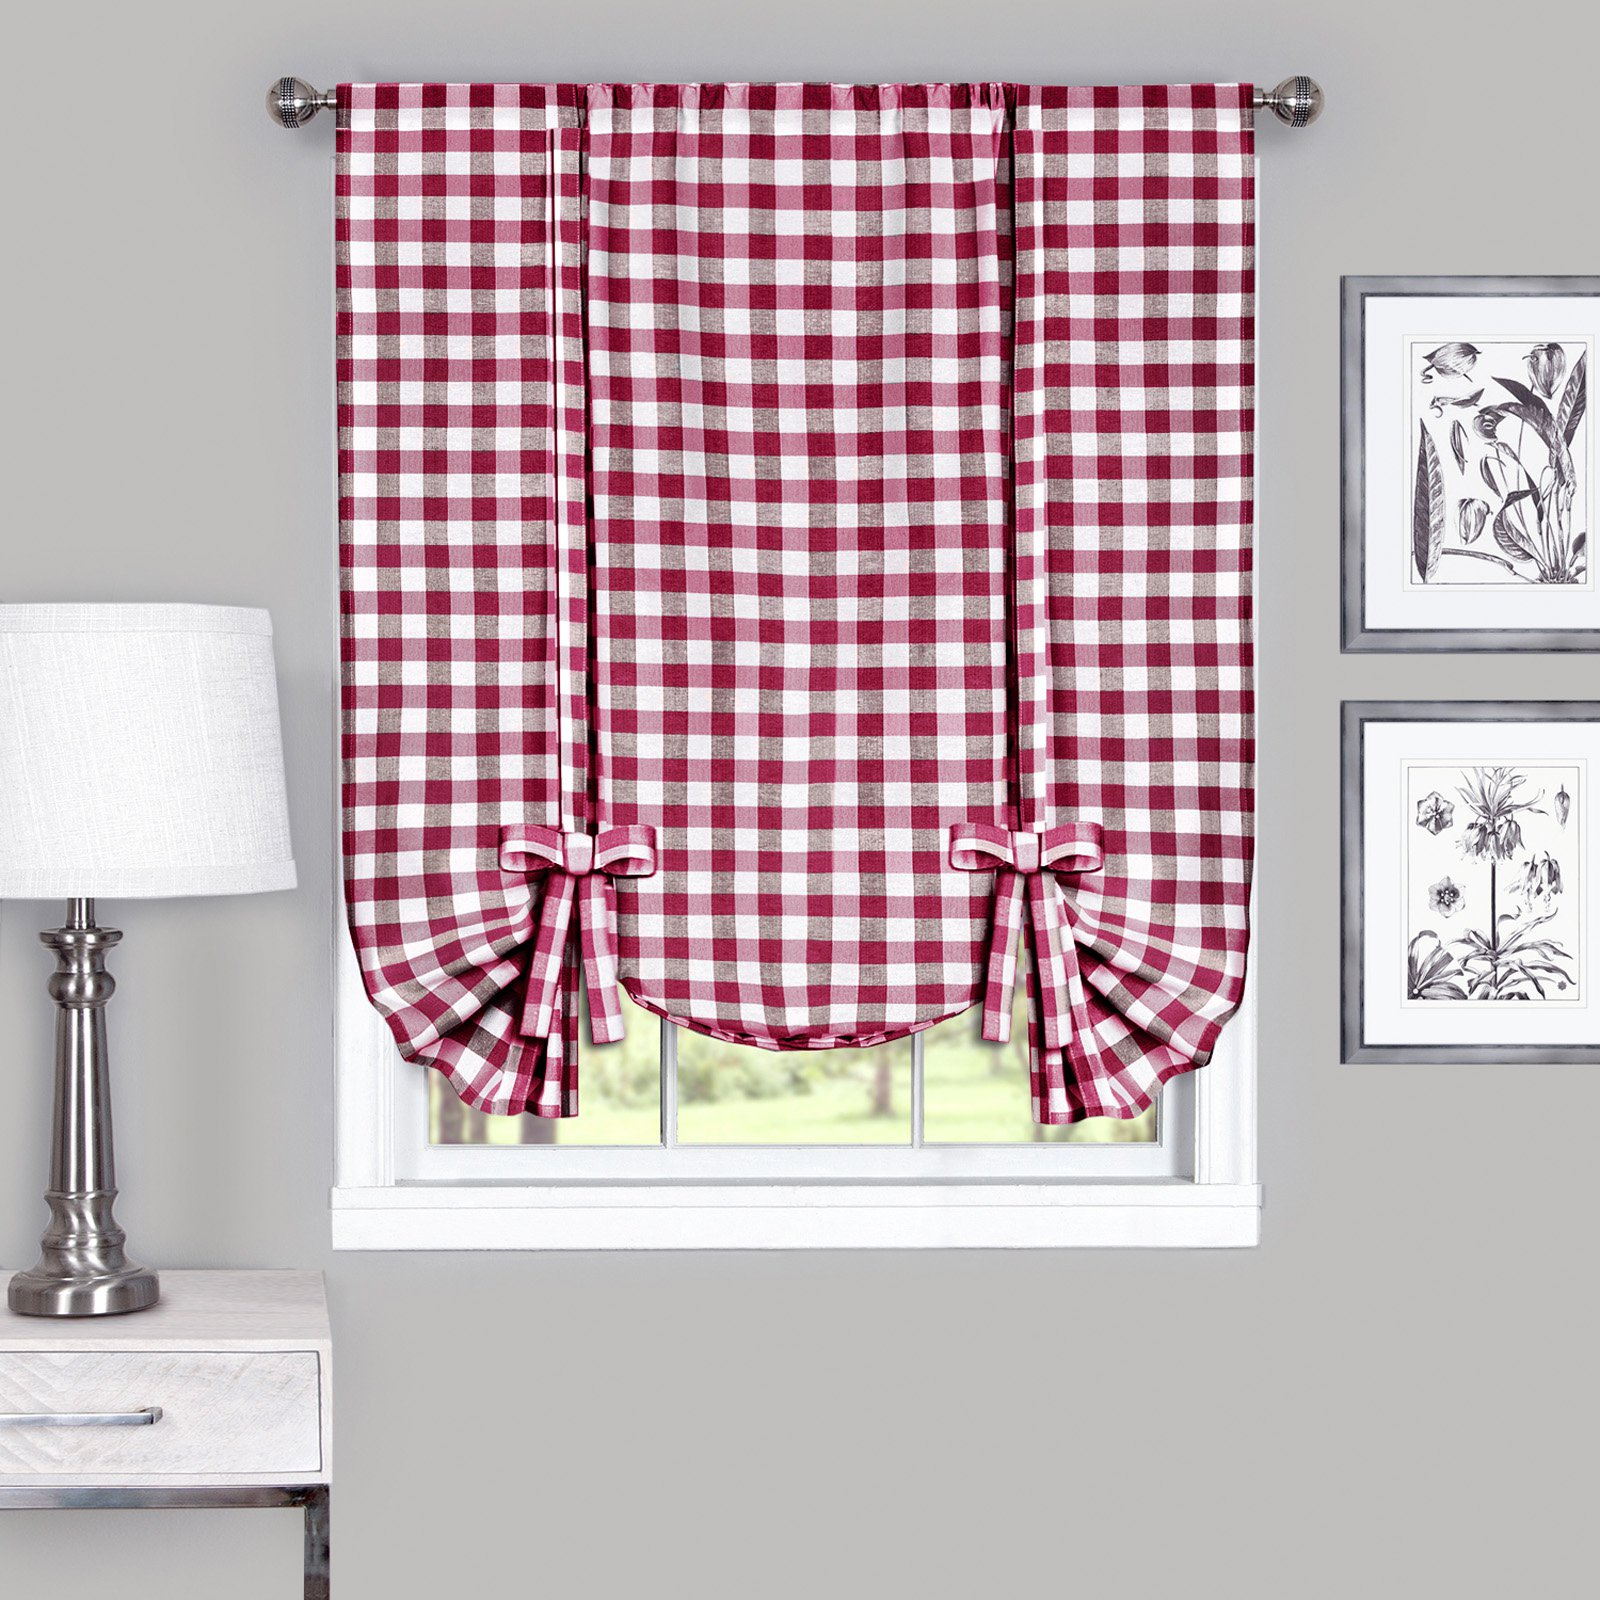 treatments window in beaded lee up picture sale curtain inspirations curtains rink the curtainse masscountry tie country valance fantastic at